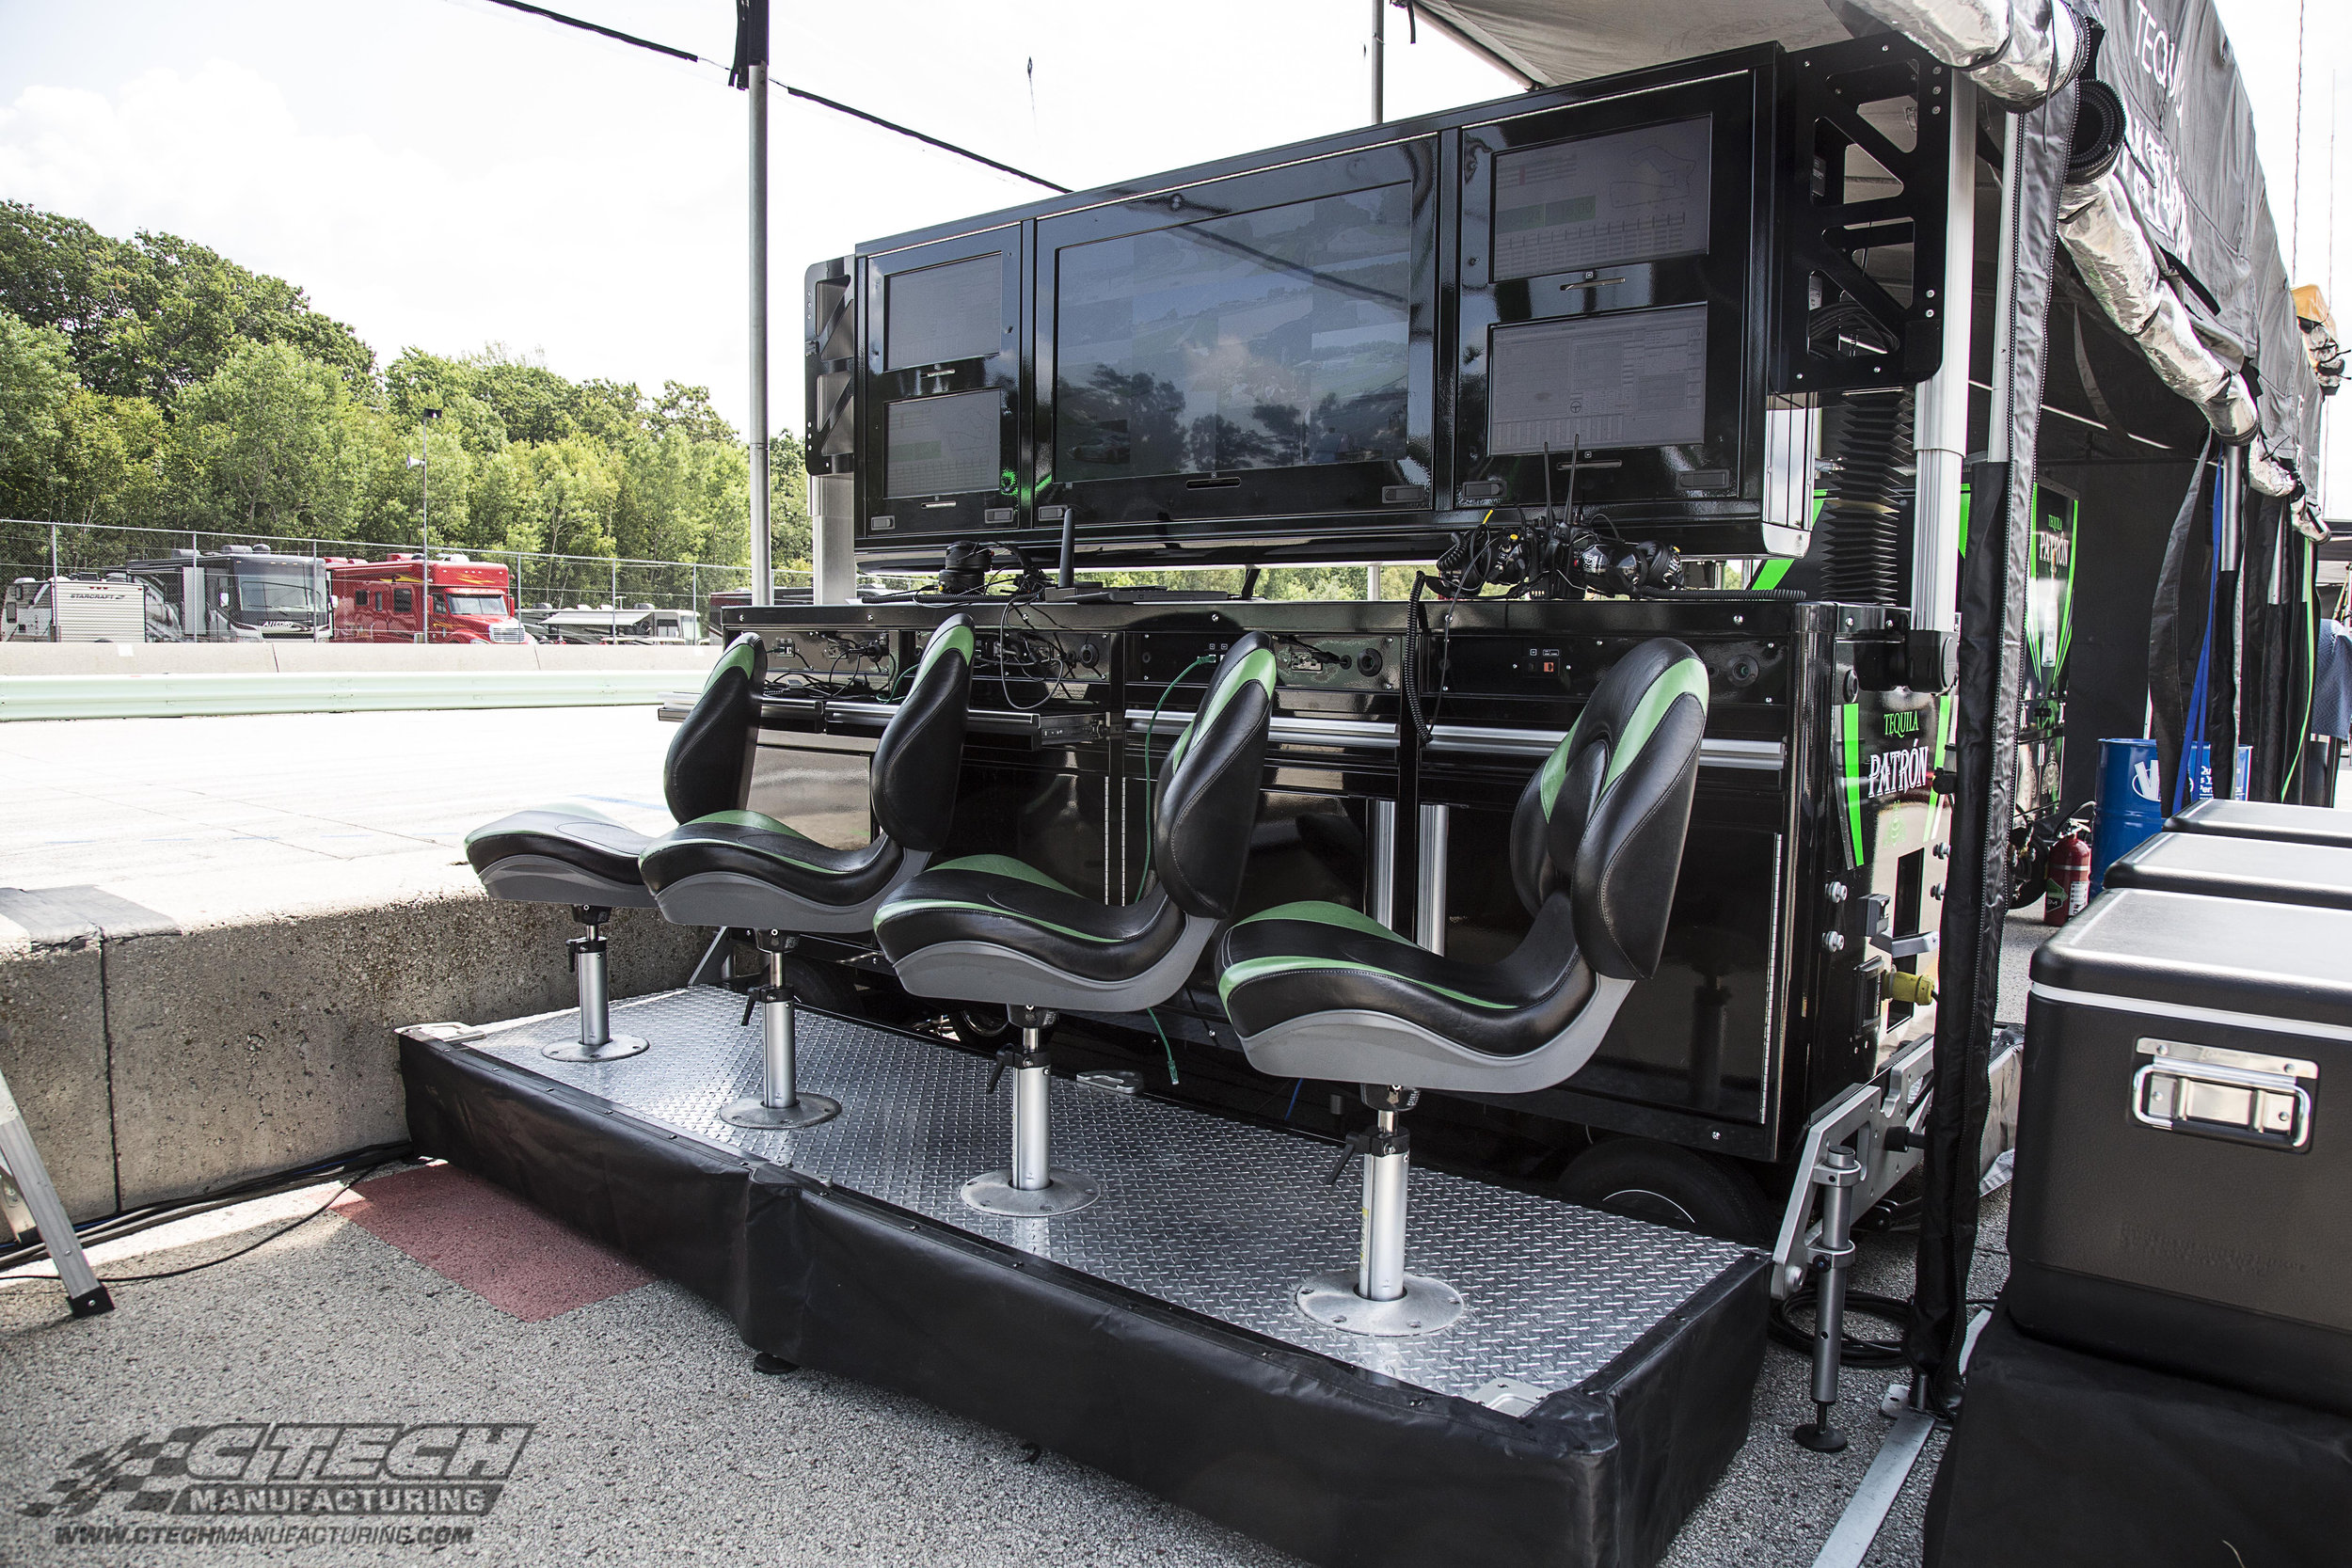 Timing & Scoring Carts by CTECH help your team keep a closer eye on team cars, as well as the competition. Power and network hookups are provided to support multiple workstations on the observation deck.